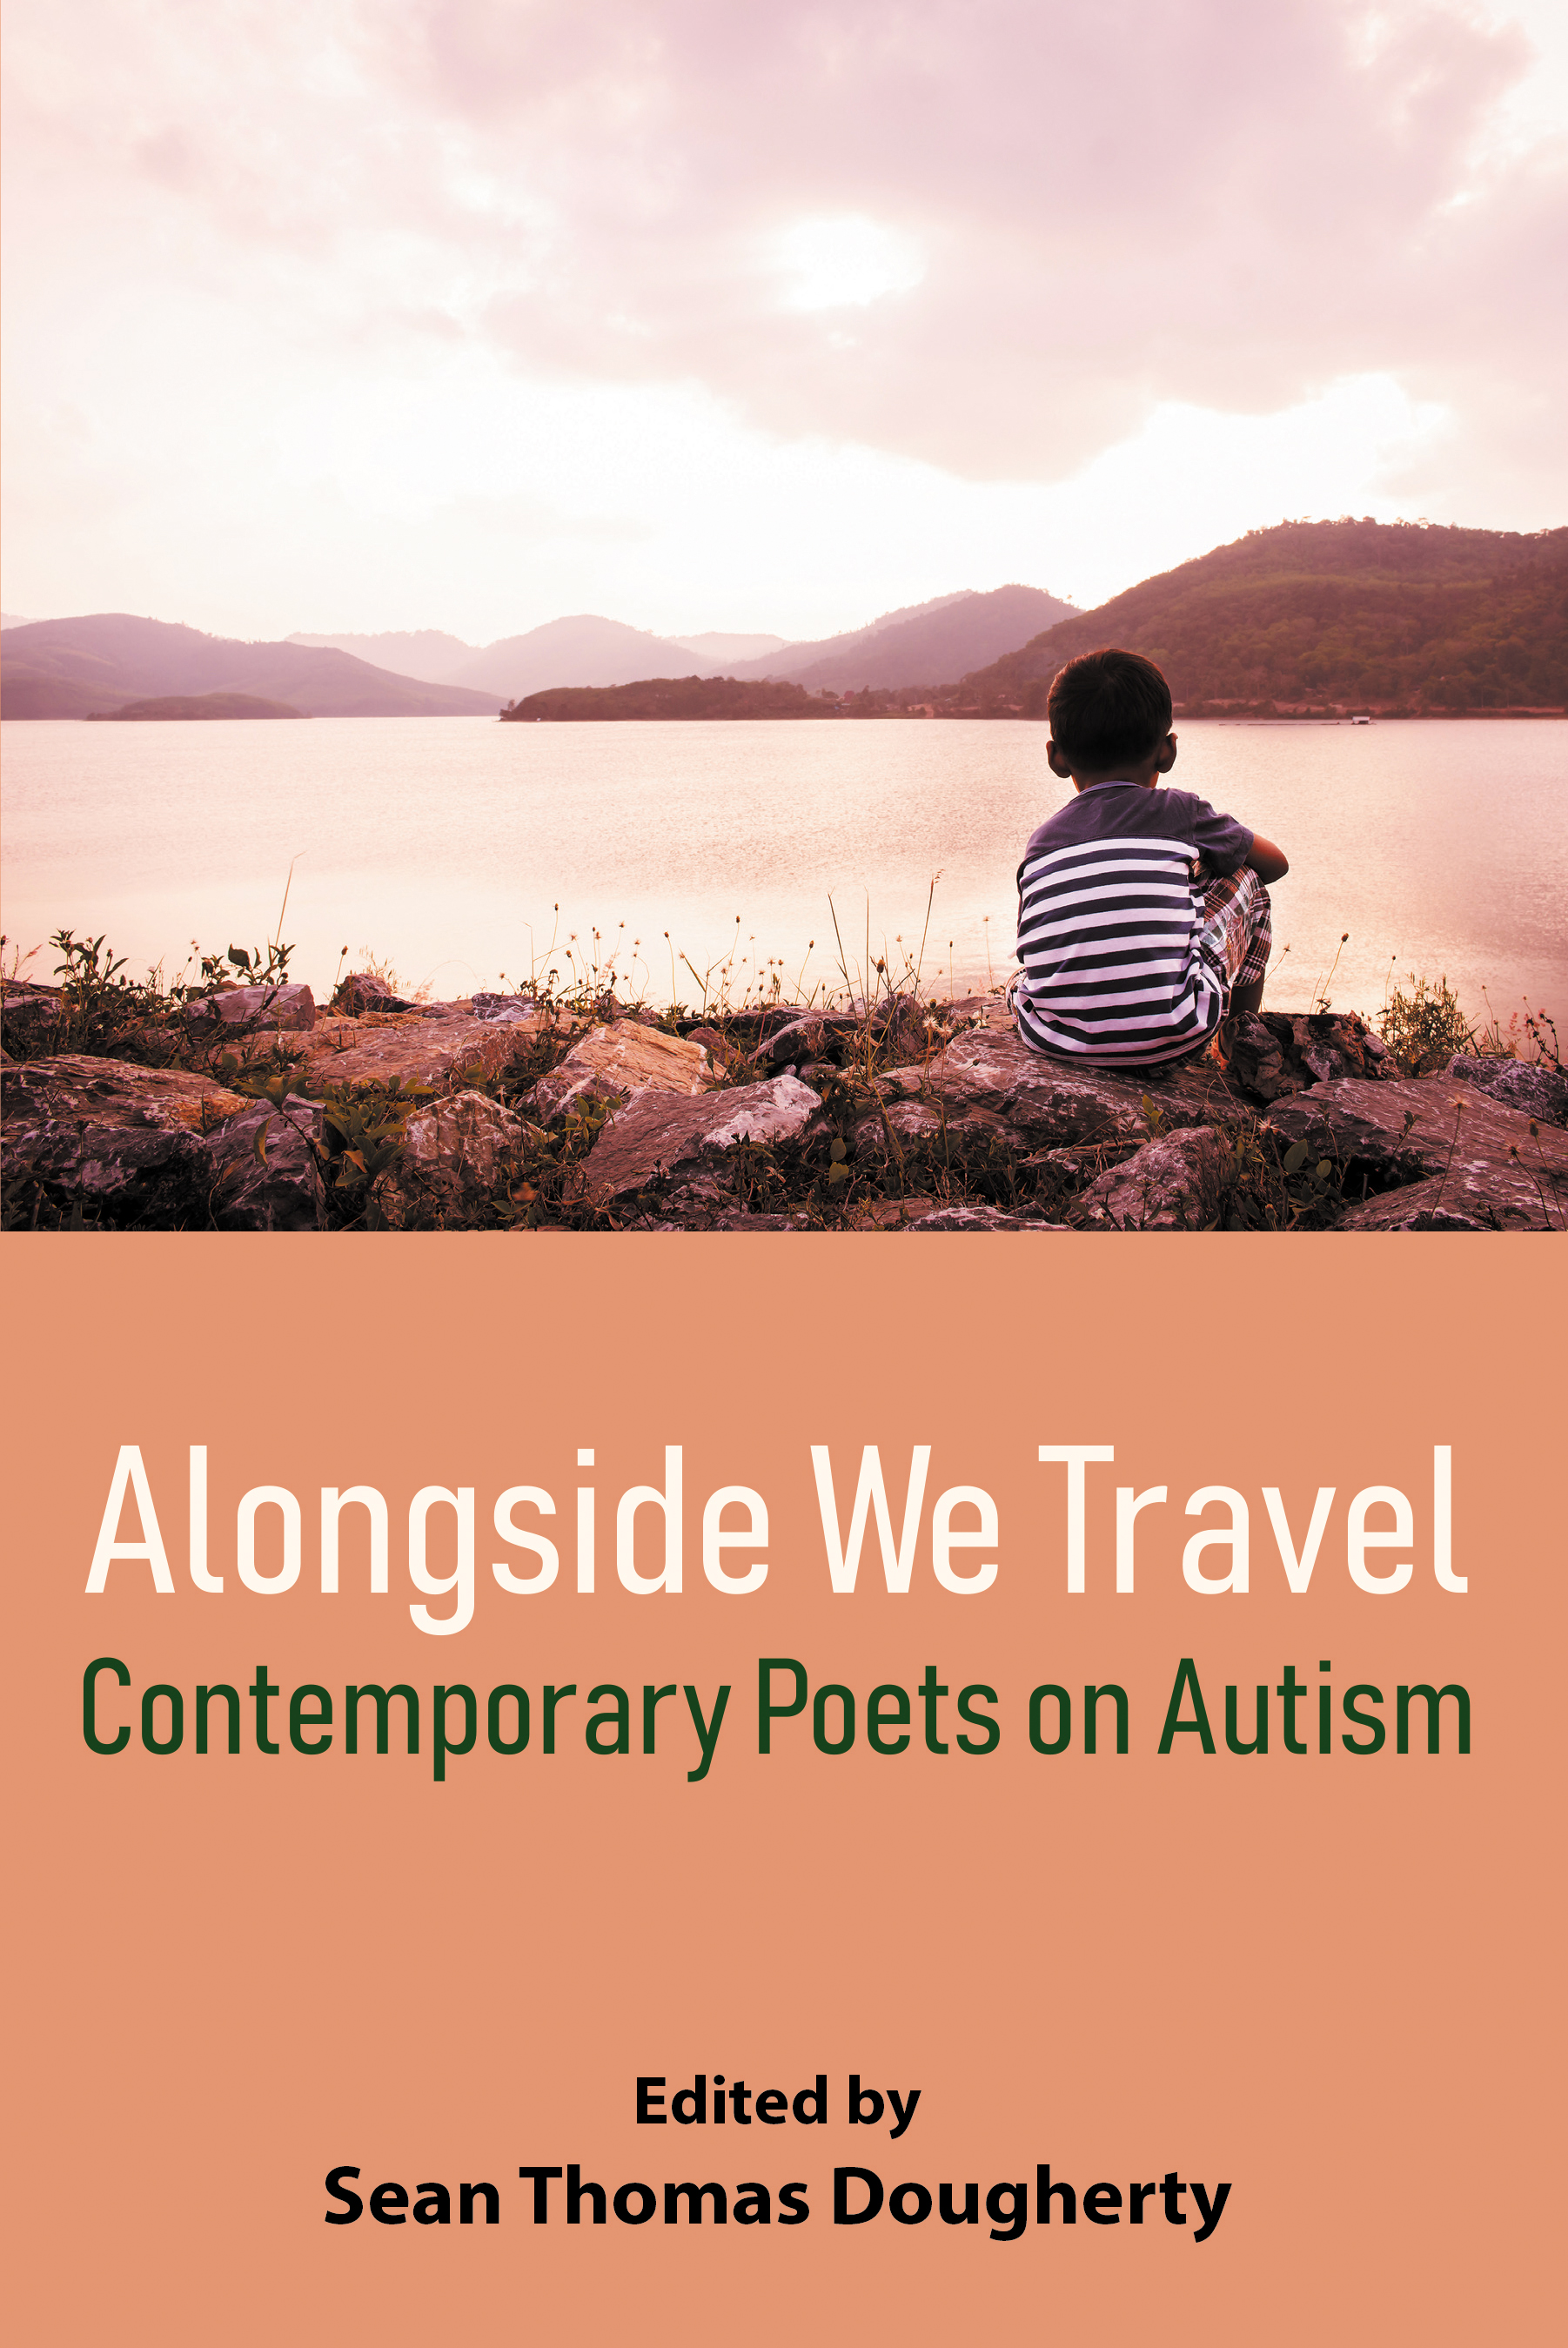 Alongside We Travel: Contemporary Poets on Autism